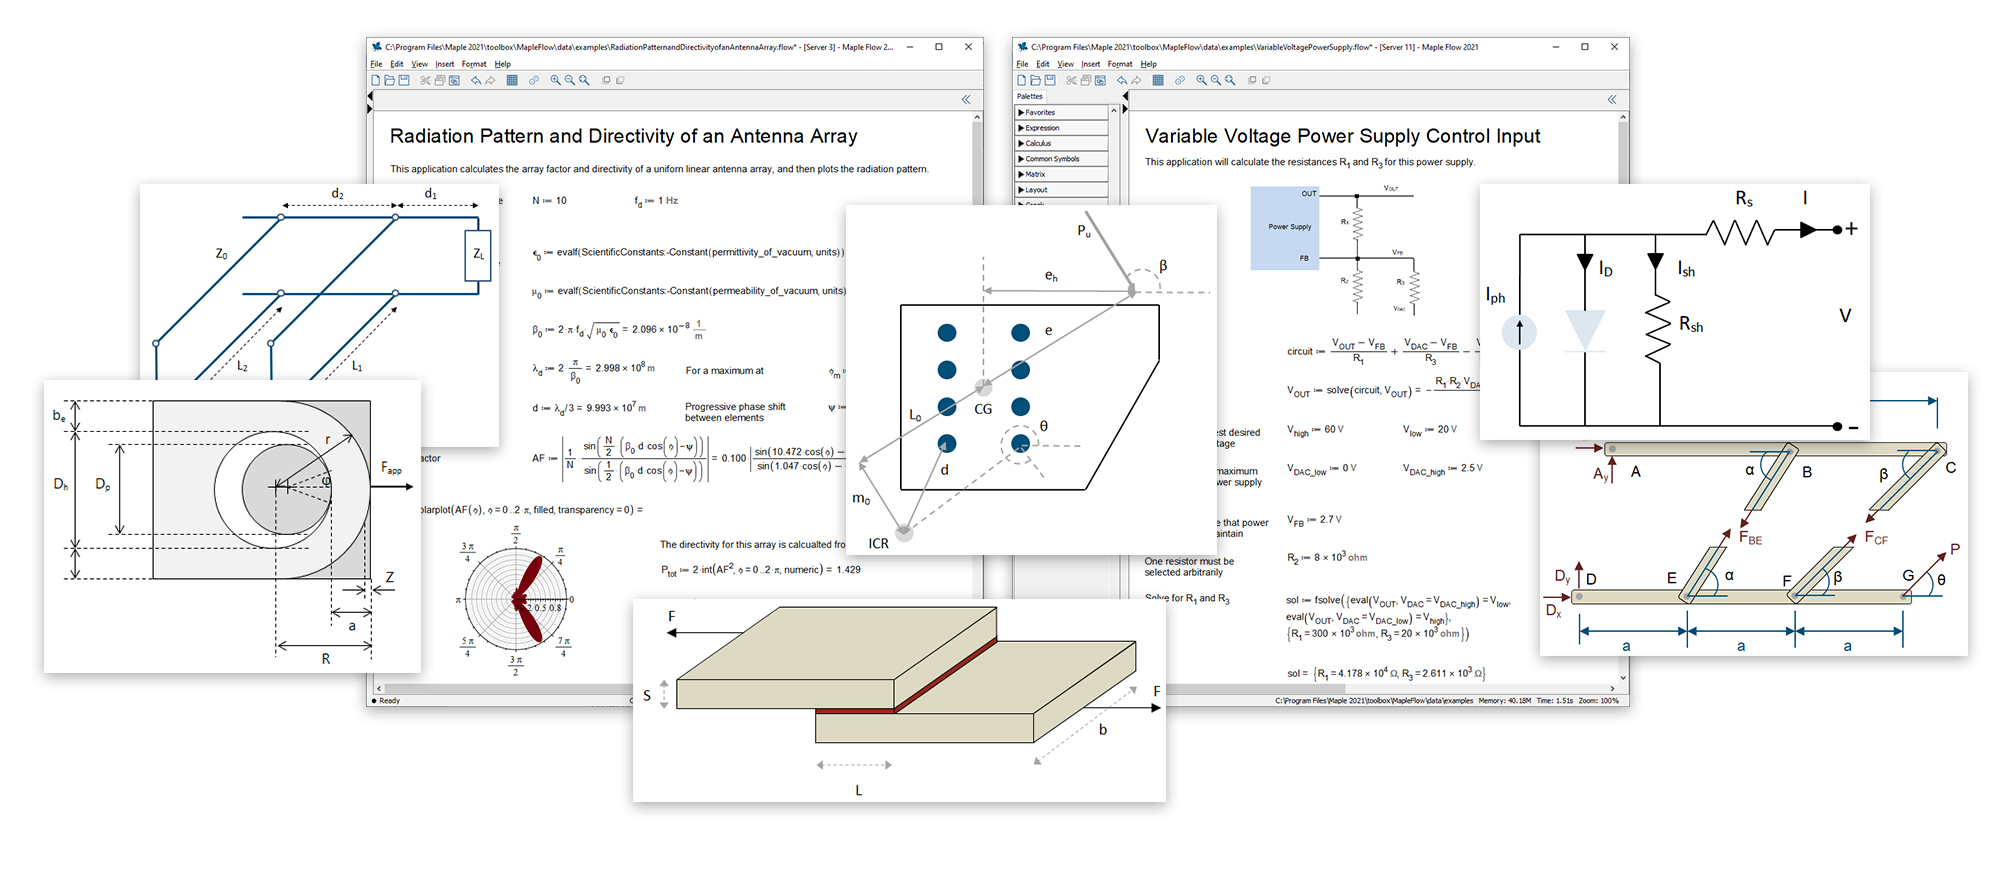 New Maple Flow product from Maplesoft provides a flexible mathematics tool for engineering projects